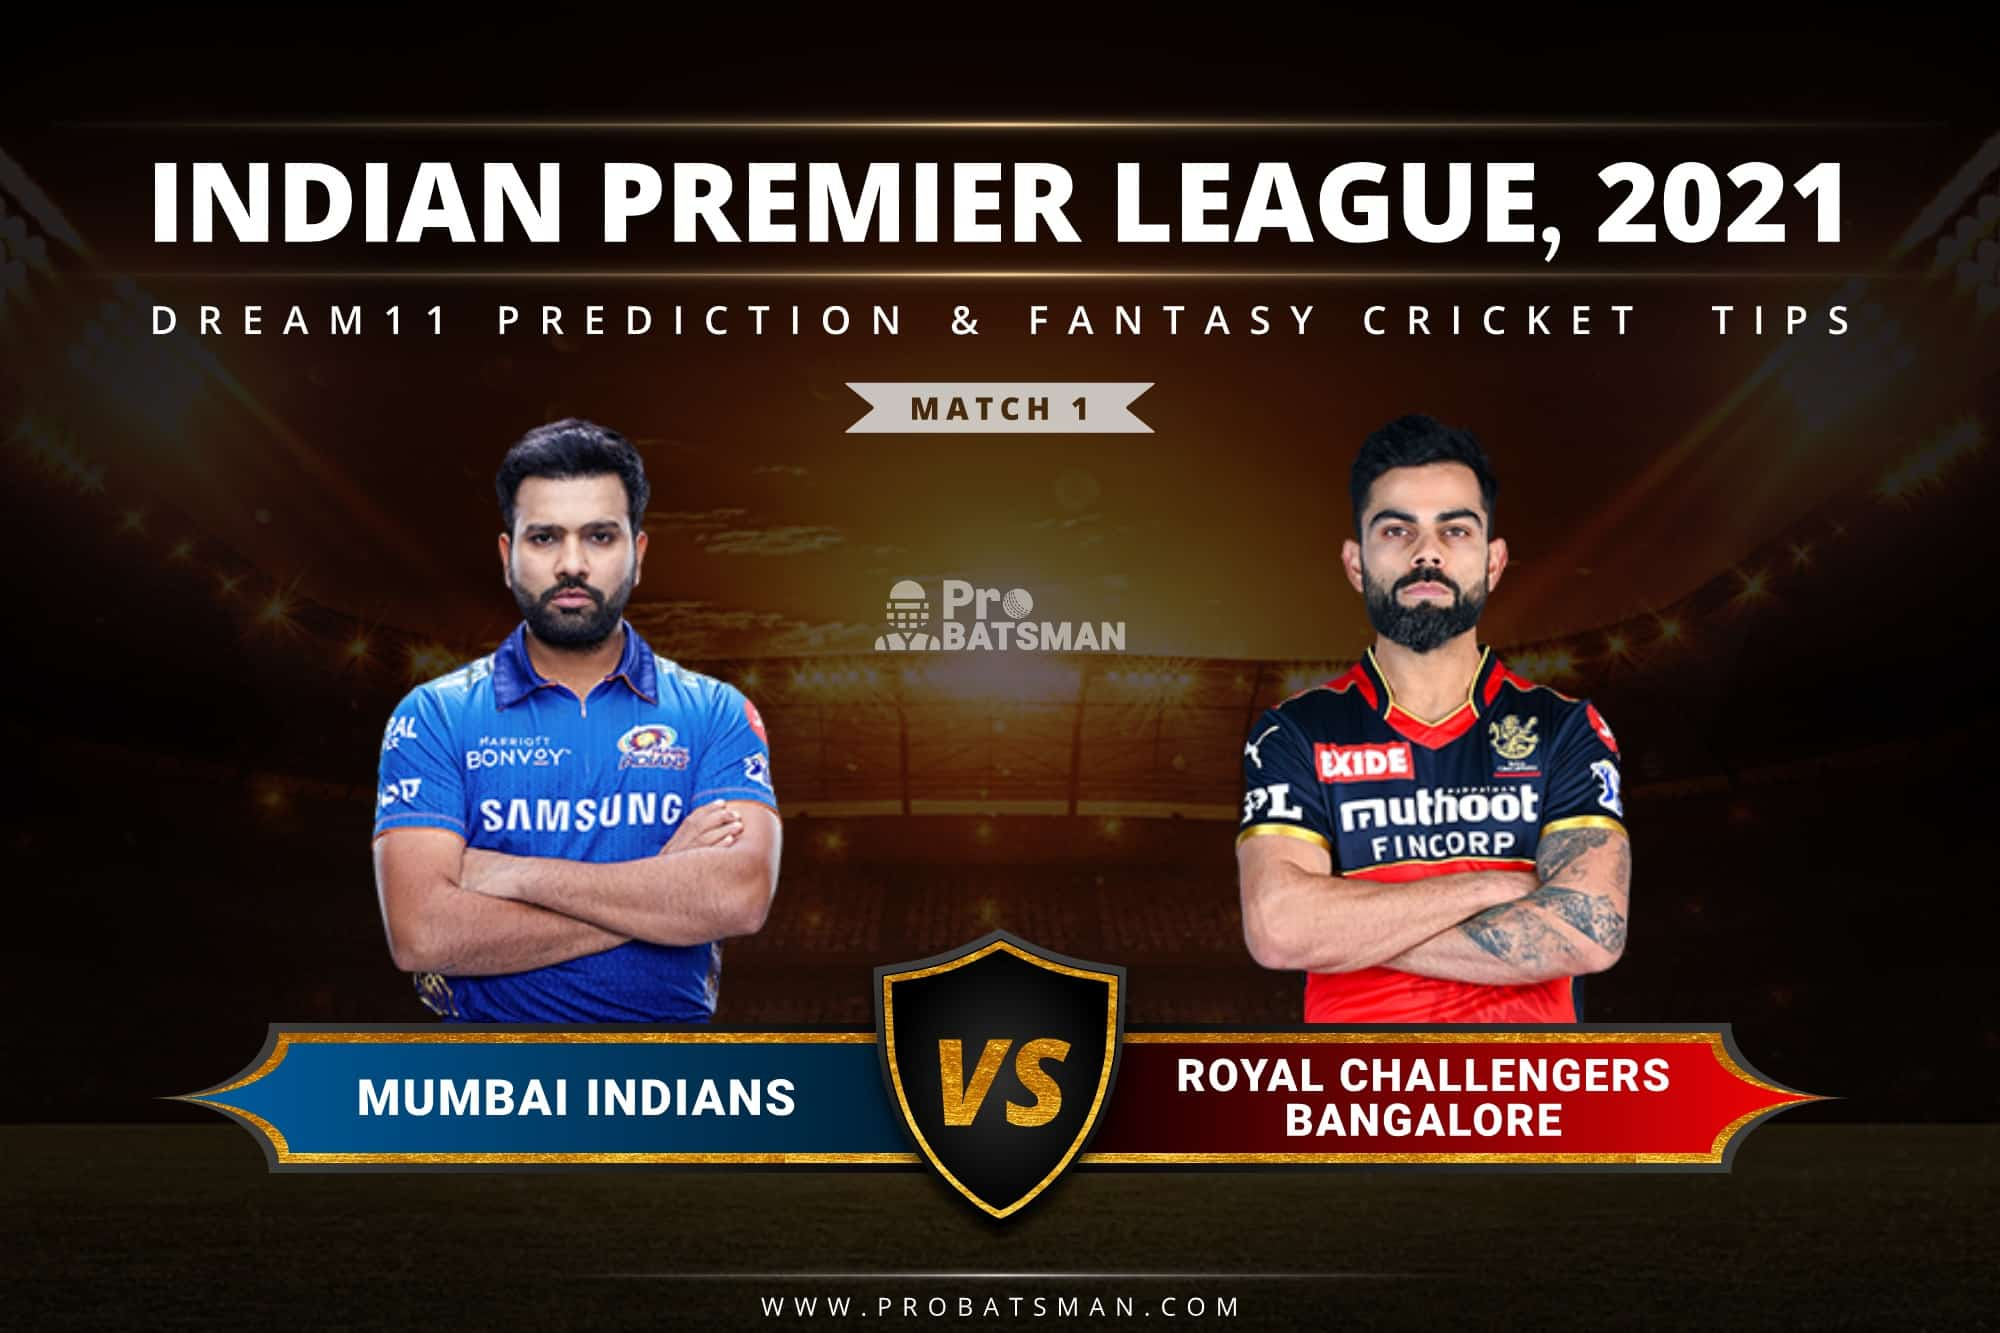 MI vs RCB Dream11 Prediction: Fantasy Cricket Tips, Playing XI, Pitch Report, Stats, Match & Injury Updates, Indian Premier League (IPL) 2021